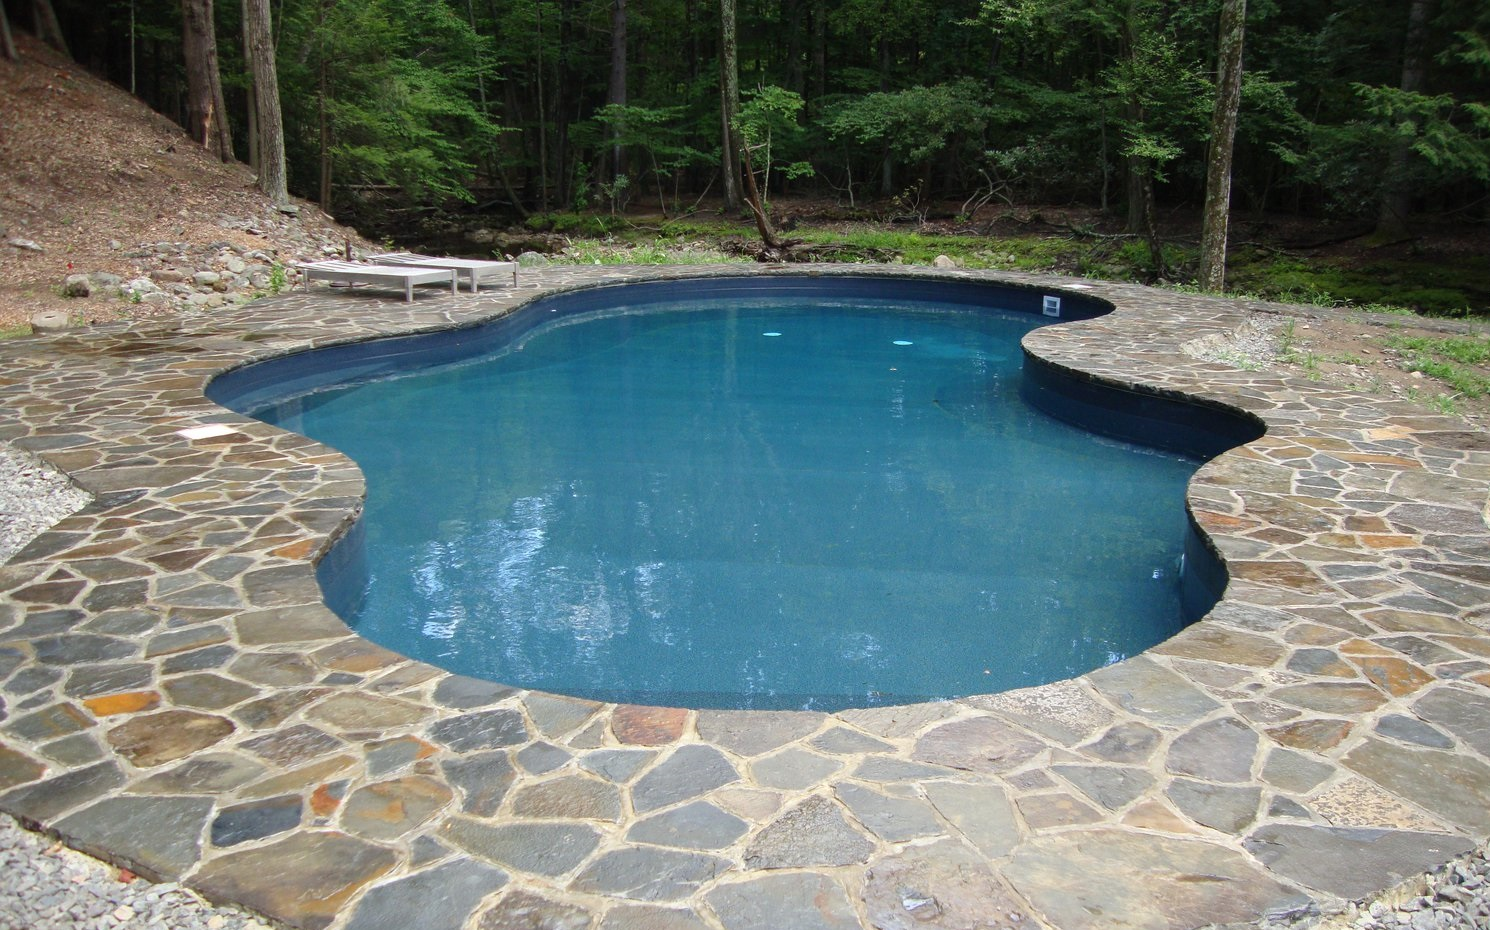 50 backyard swimming pool ideas ultimate home ideas - Swimming pool designs ...